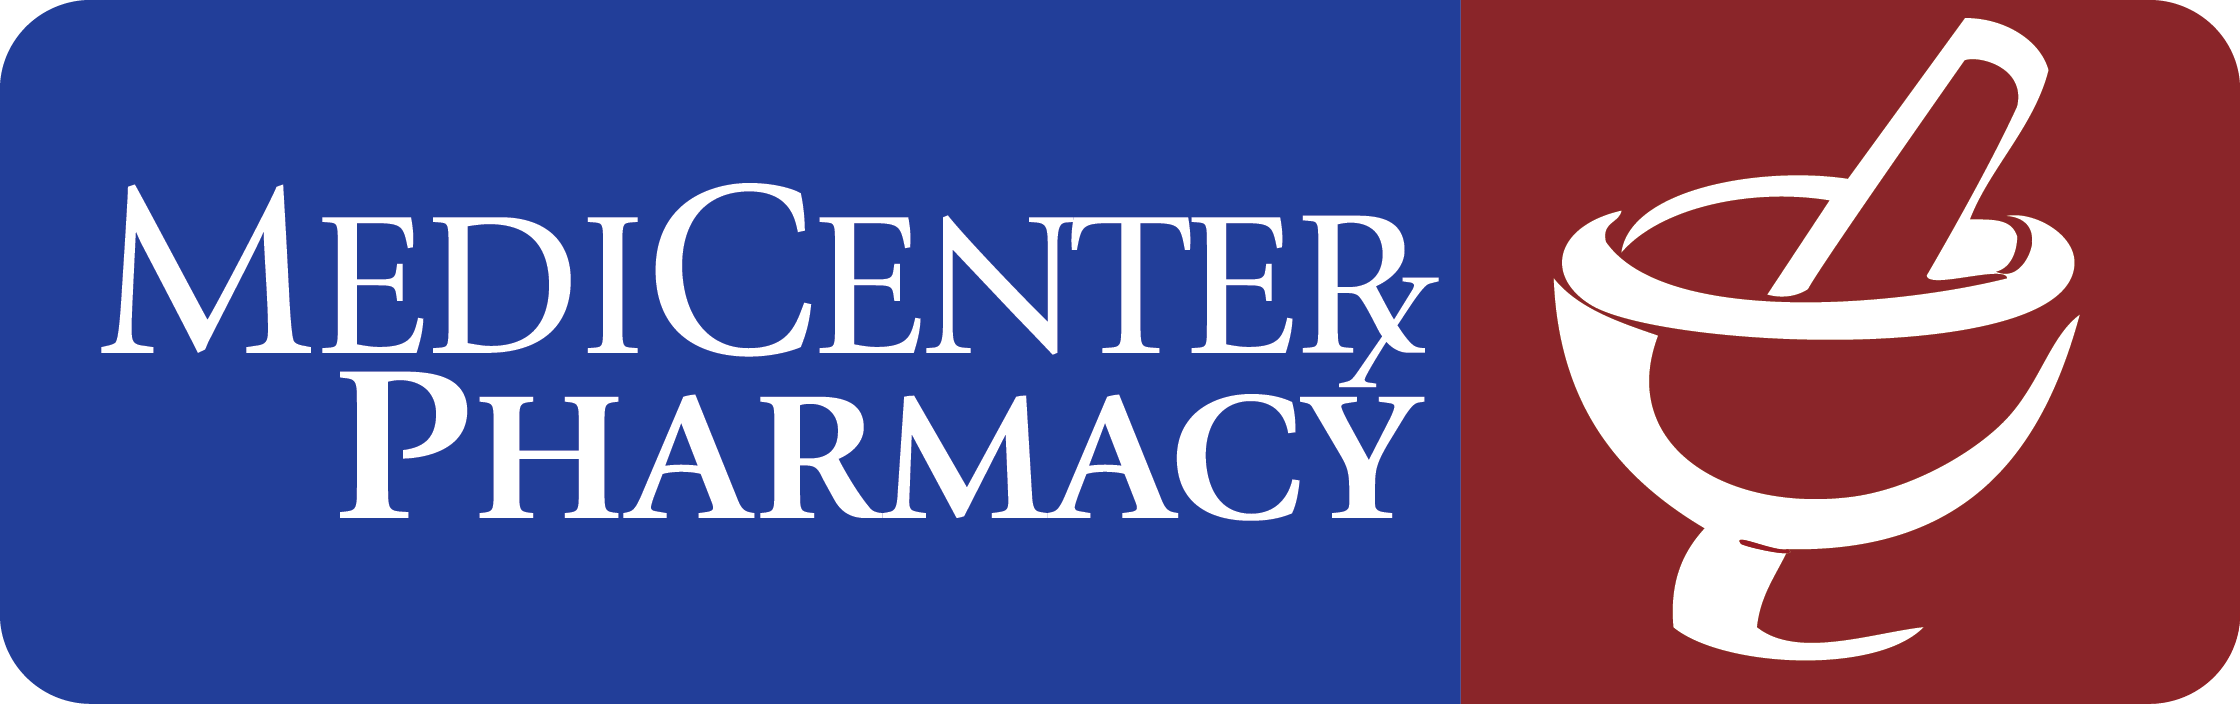 Indiana MediCenter Pharmacy